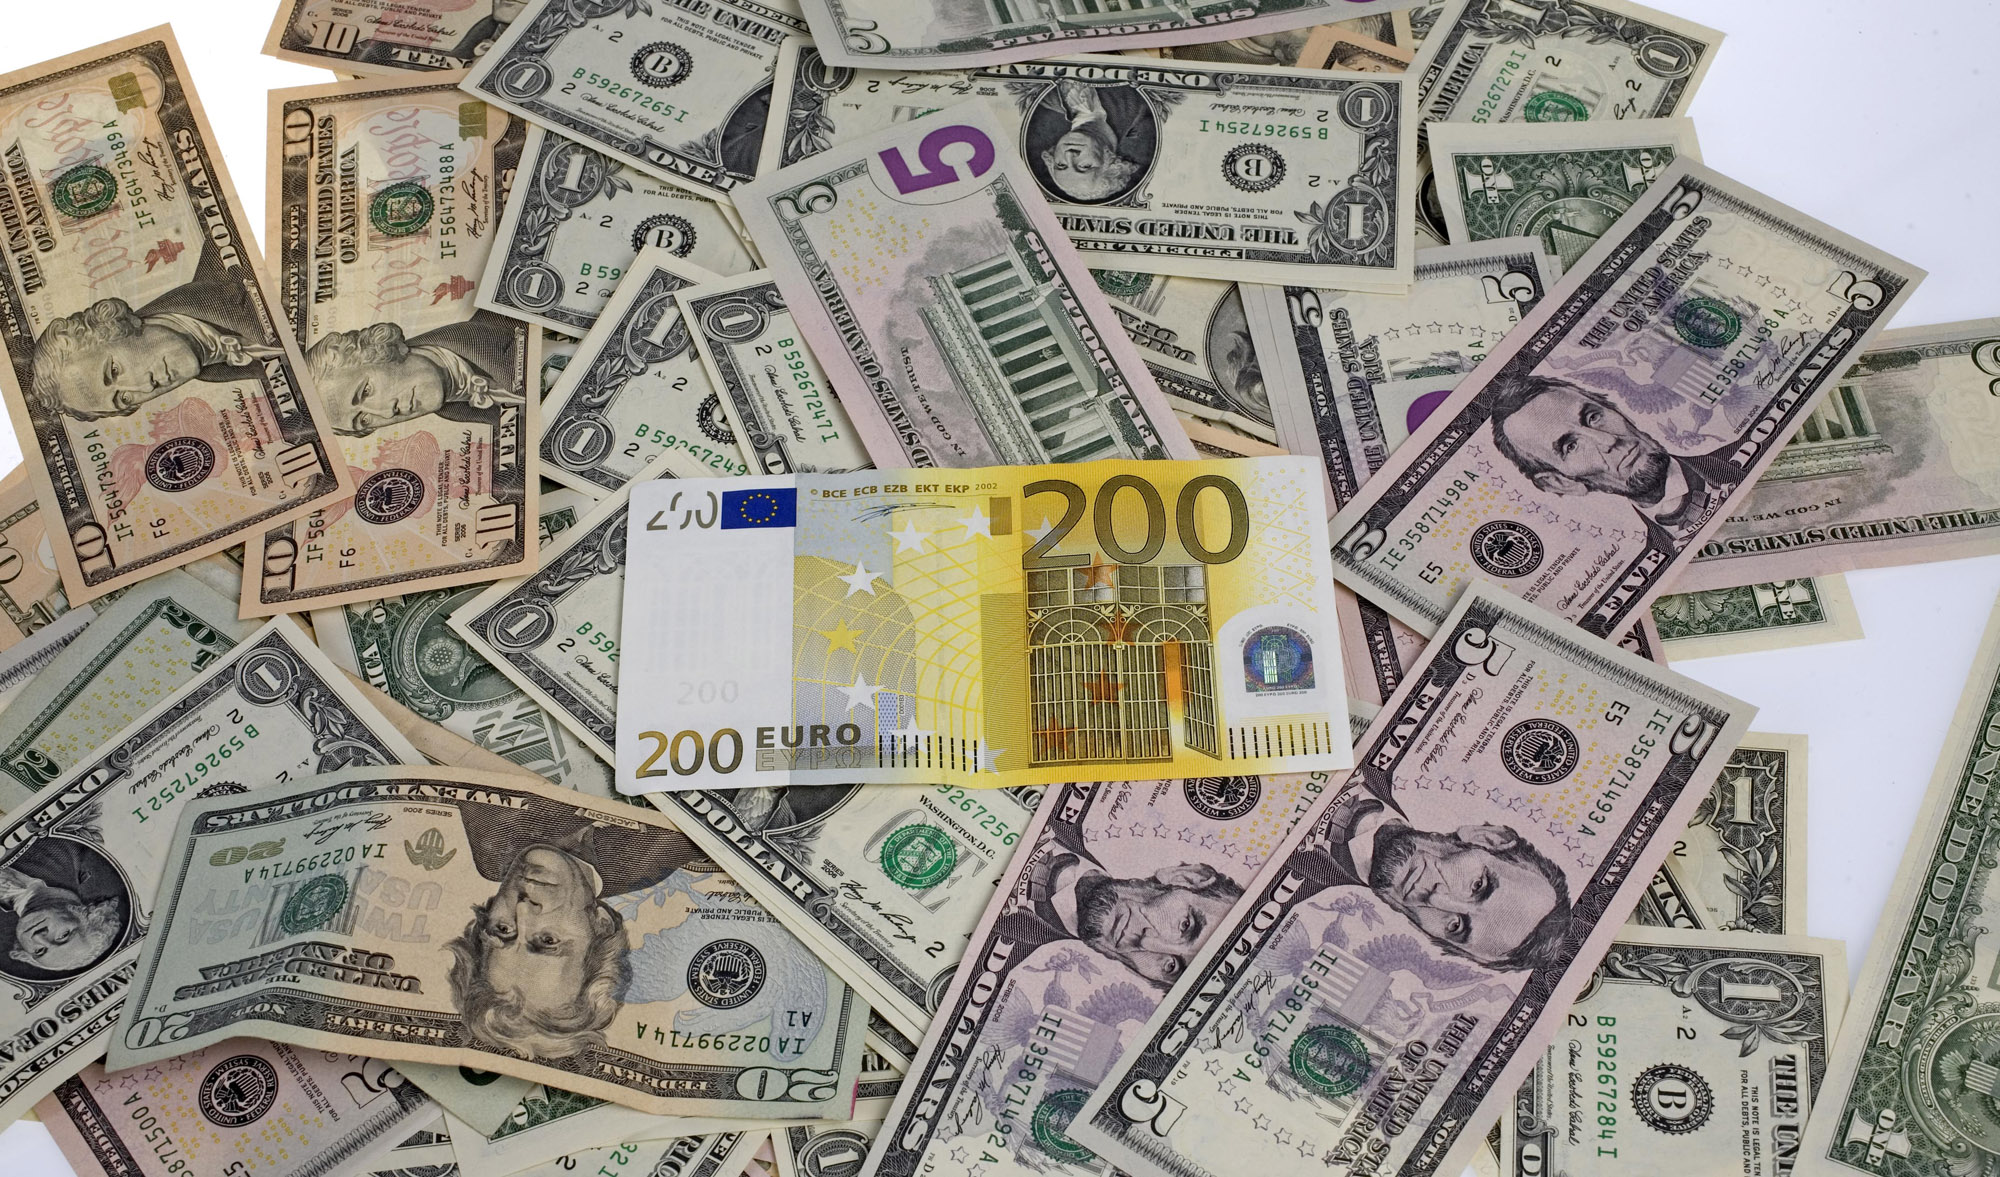 geld, money, dollar, euro, bankbiljet, banknote, briefgeld, papiergeld, bills, contant, cash, valuta